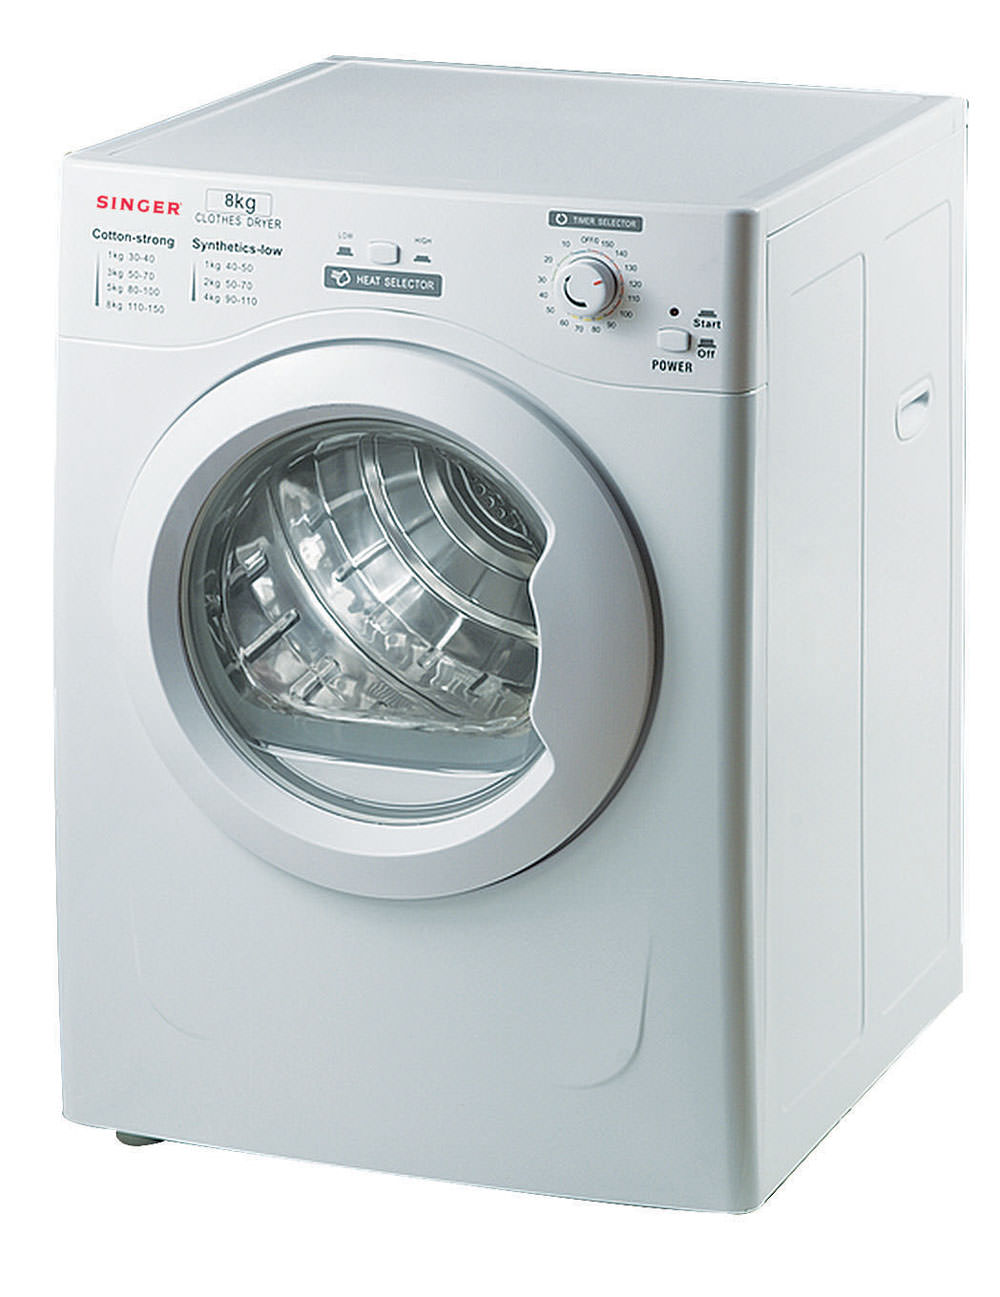 Ordinary Cheap Washer Dryer Uk Part - 8: You Are Here. Home» Washing Machine» Dryer